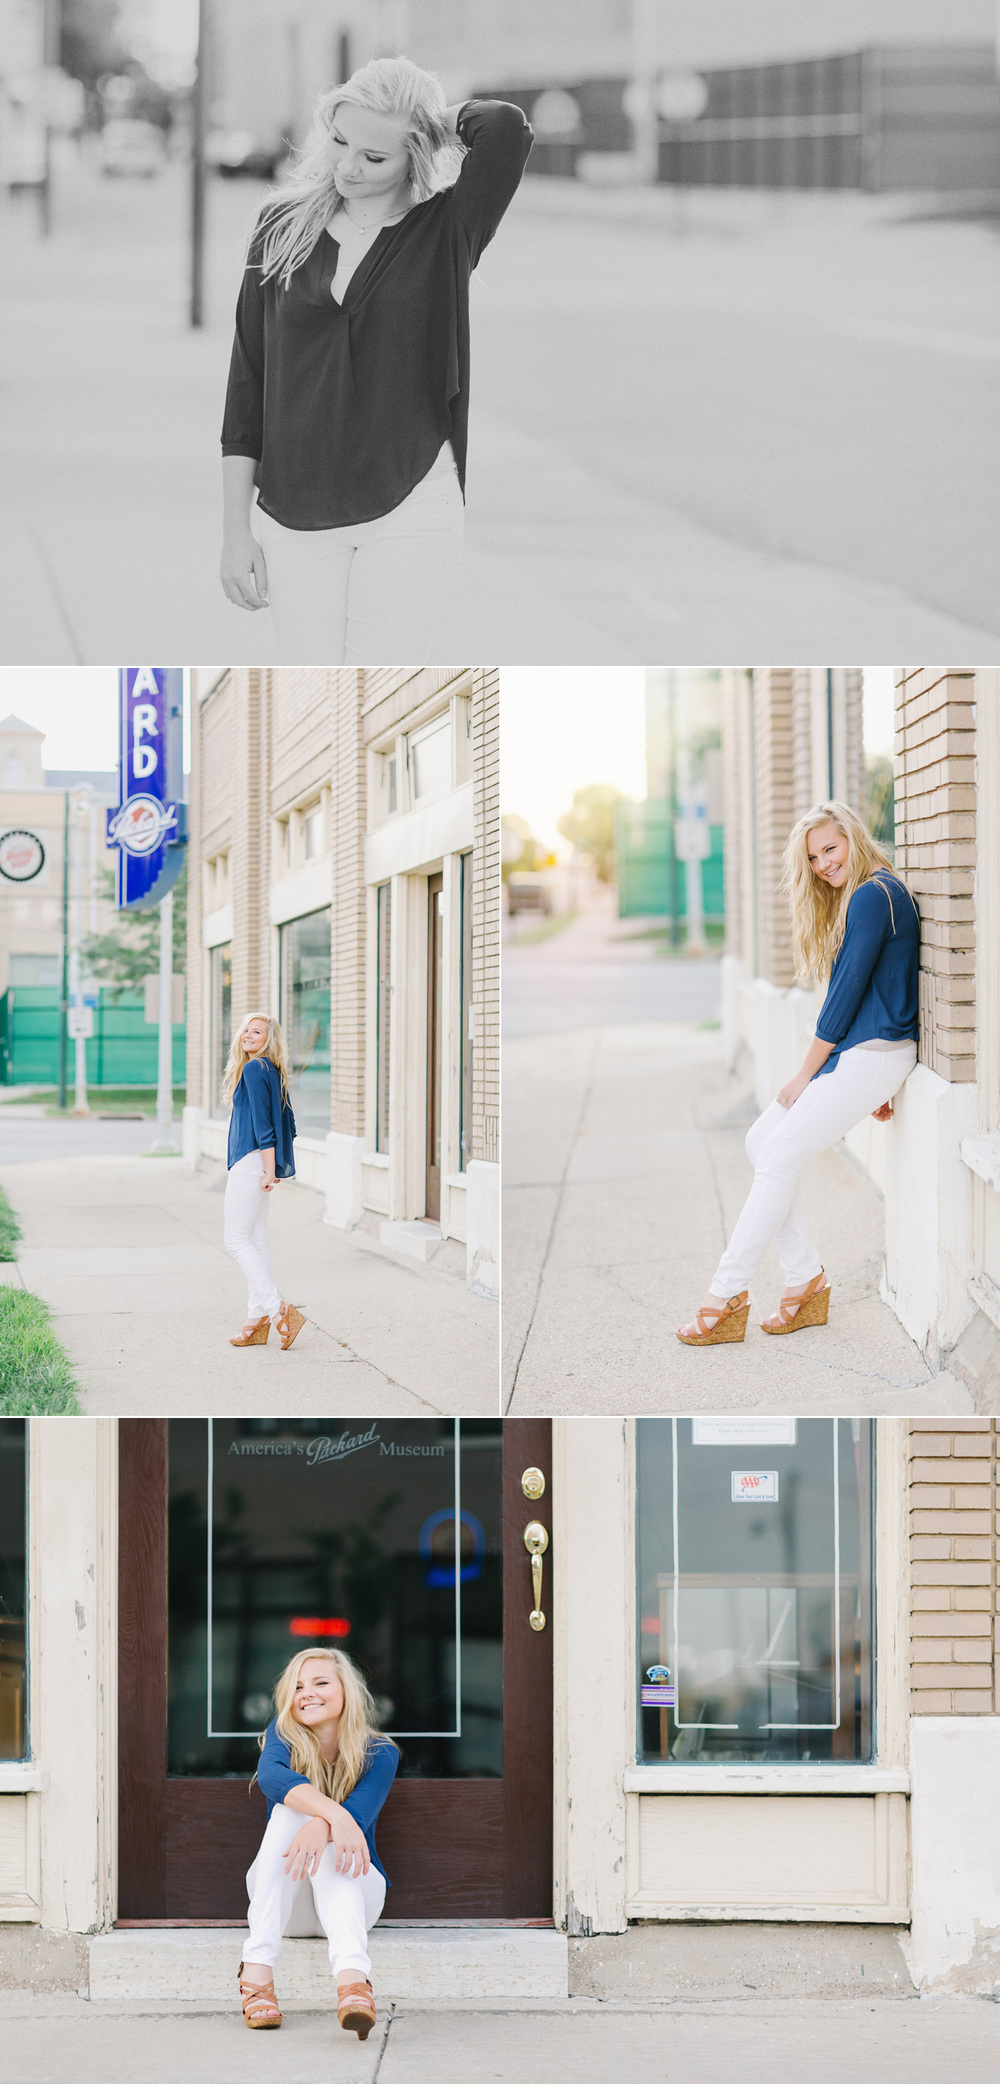 Lux-Senior-Photography-Urban-Dayton-Senior-Pictures1.jpg